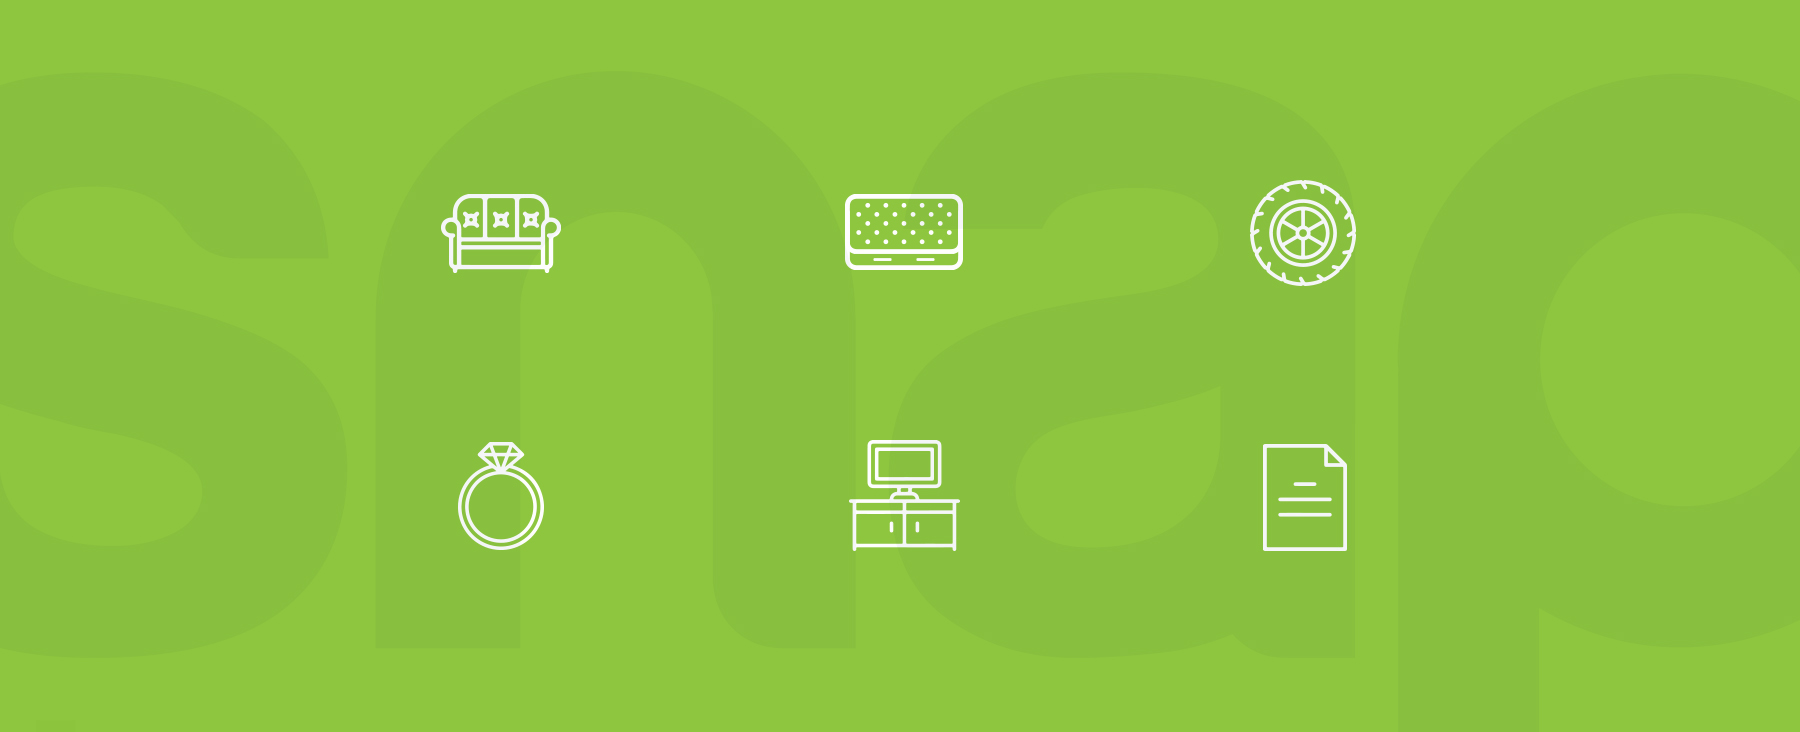 Snap Finance icons graphic